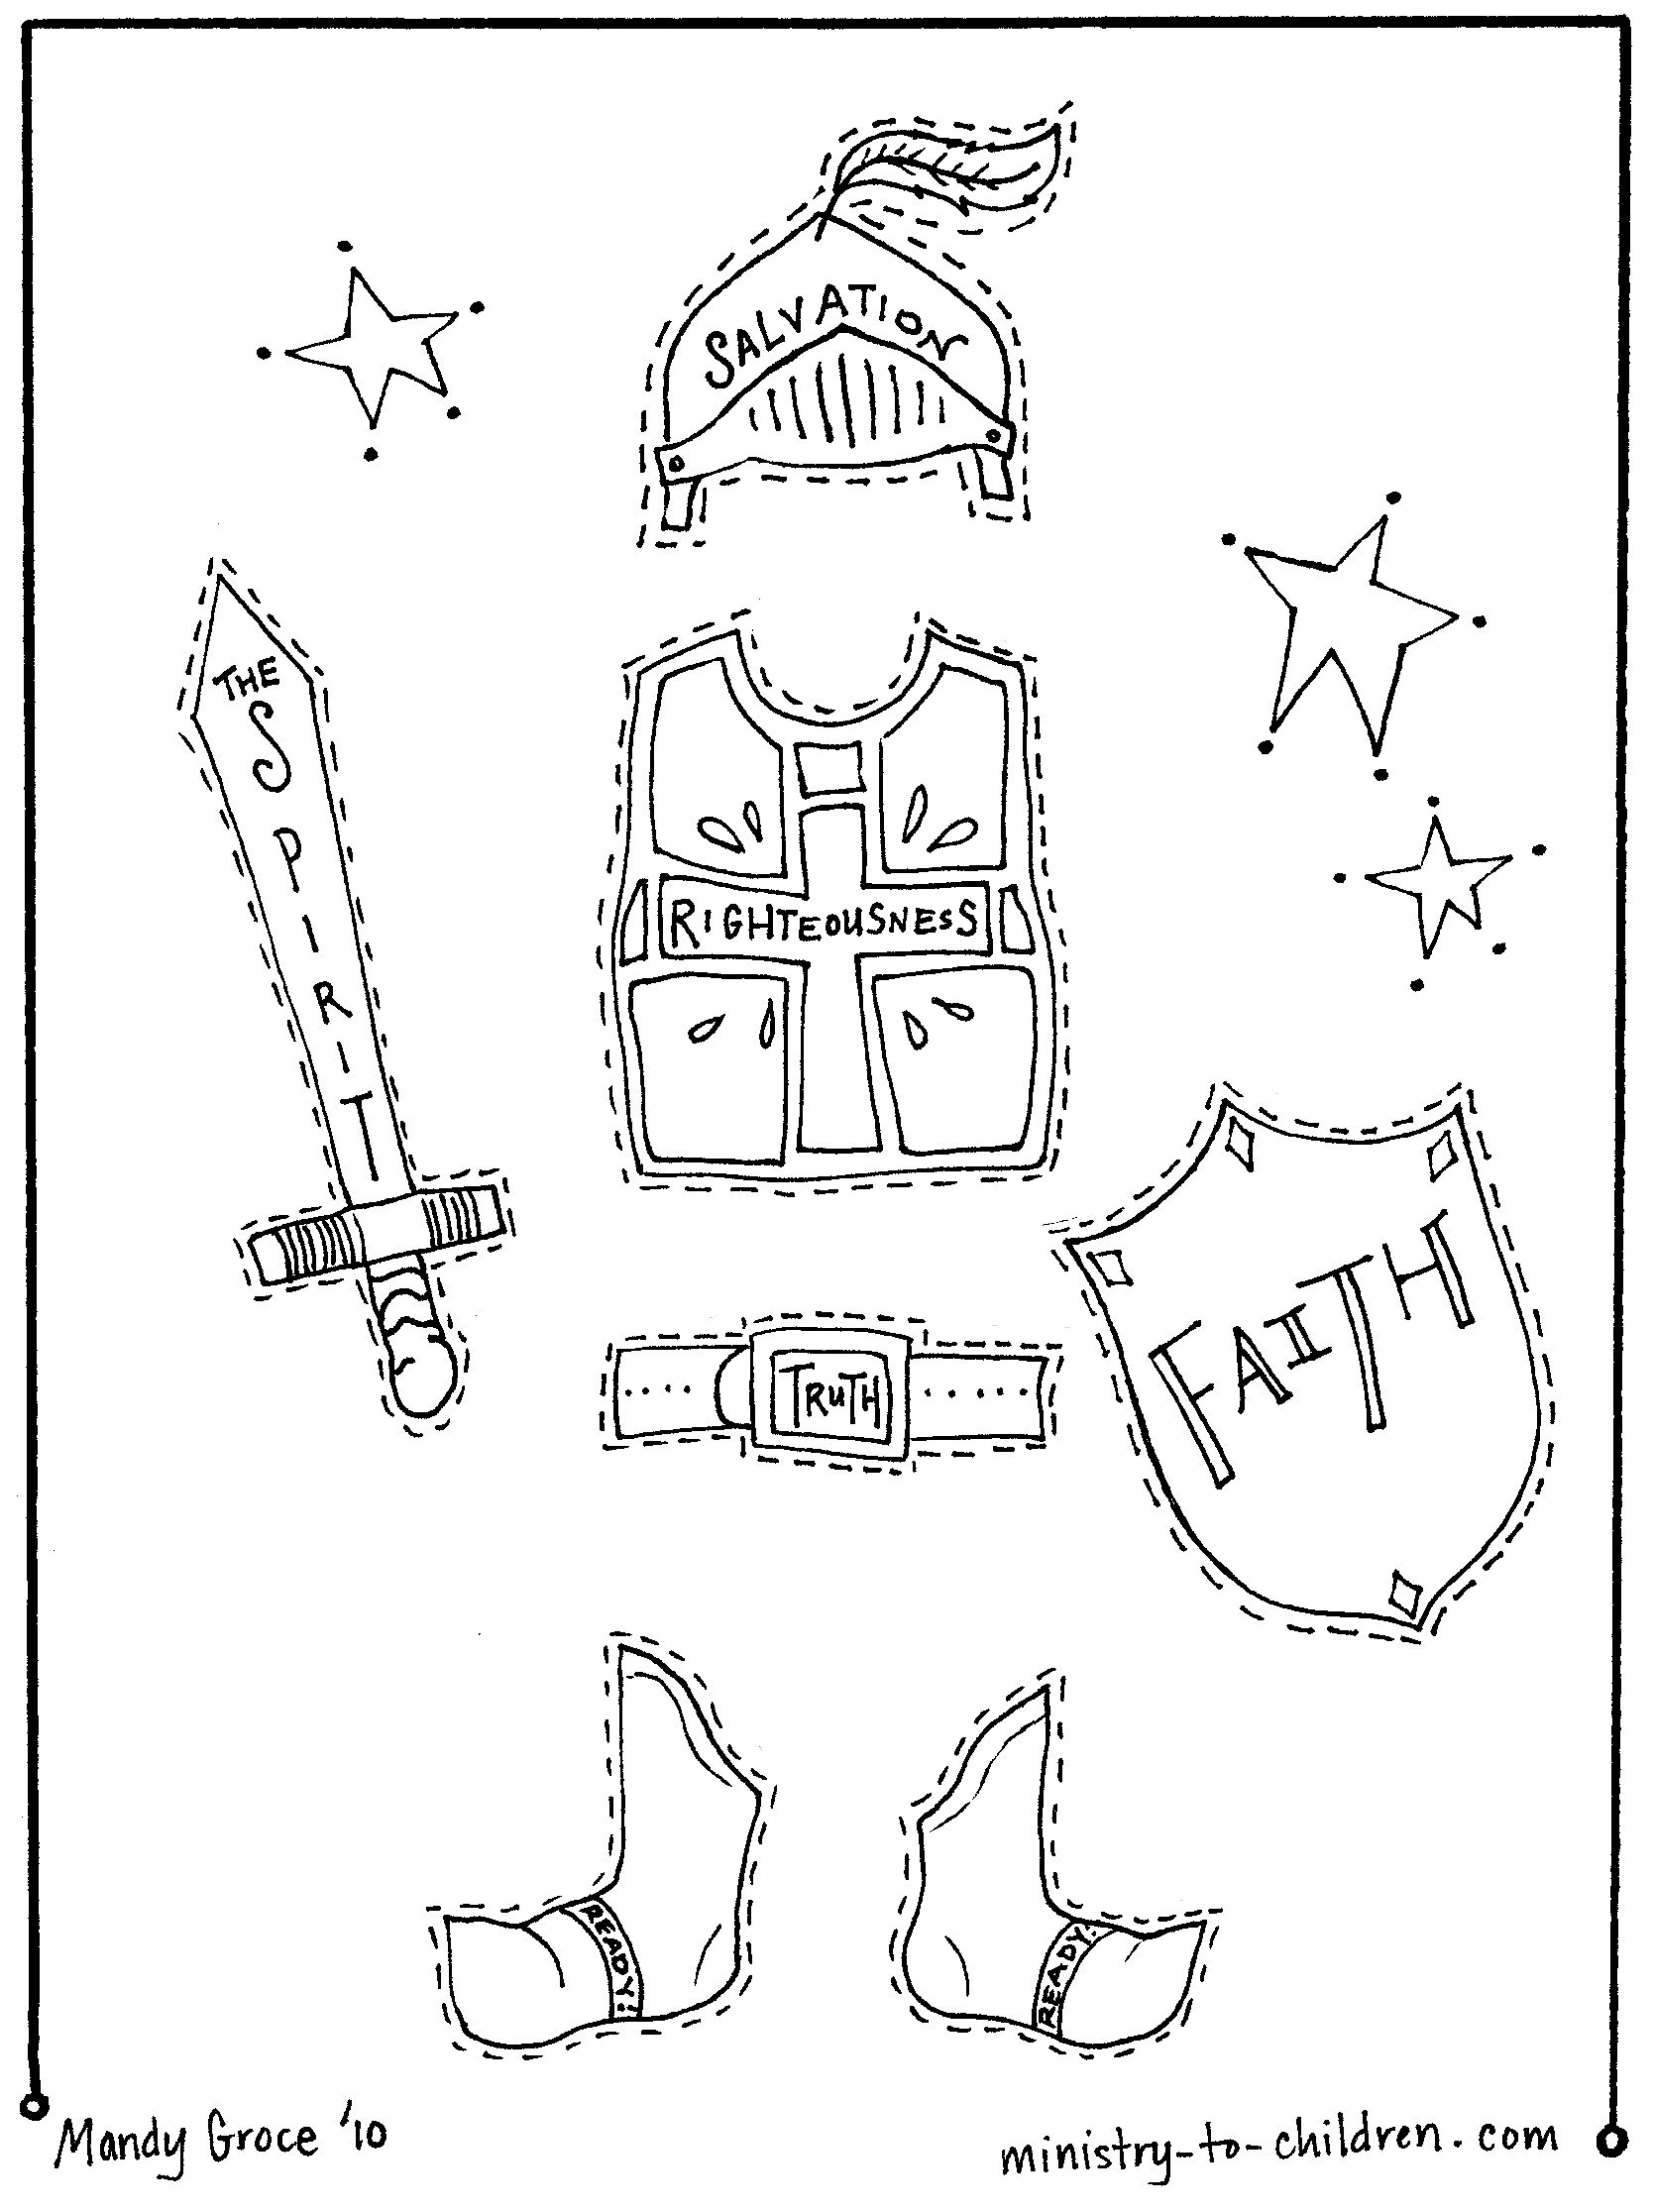 armor of god coloring pages armor of god coloring pages coloring home pages of armor god coloring